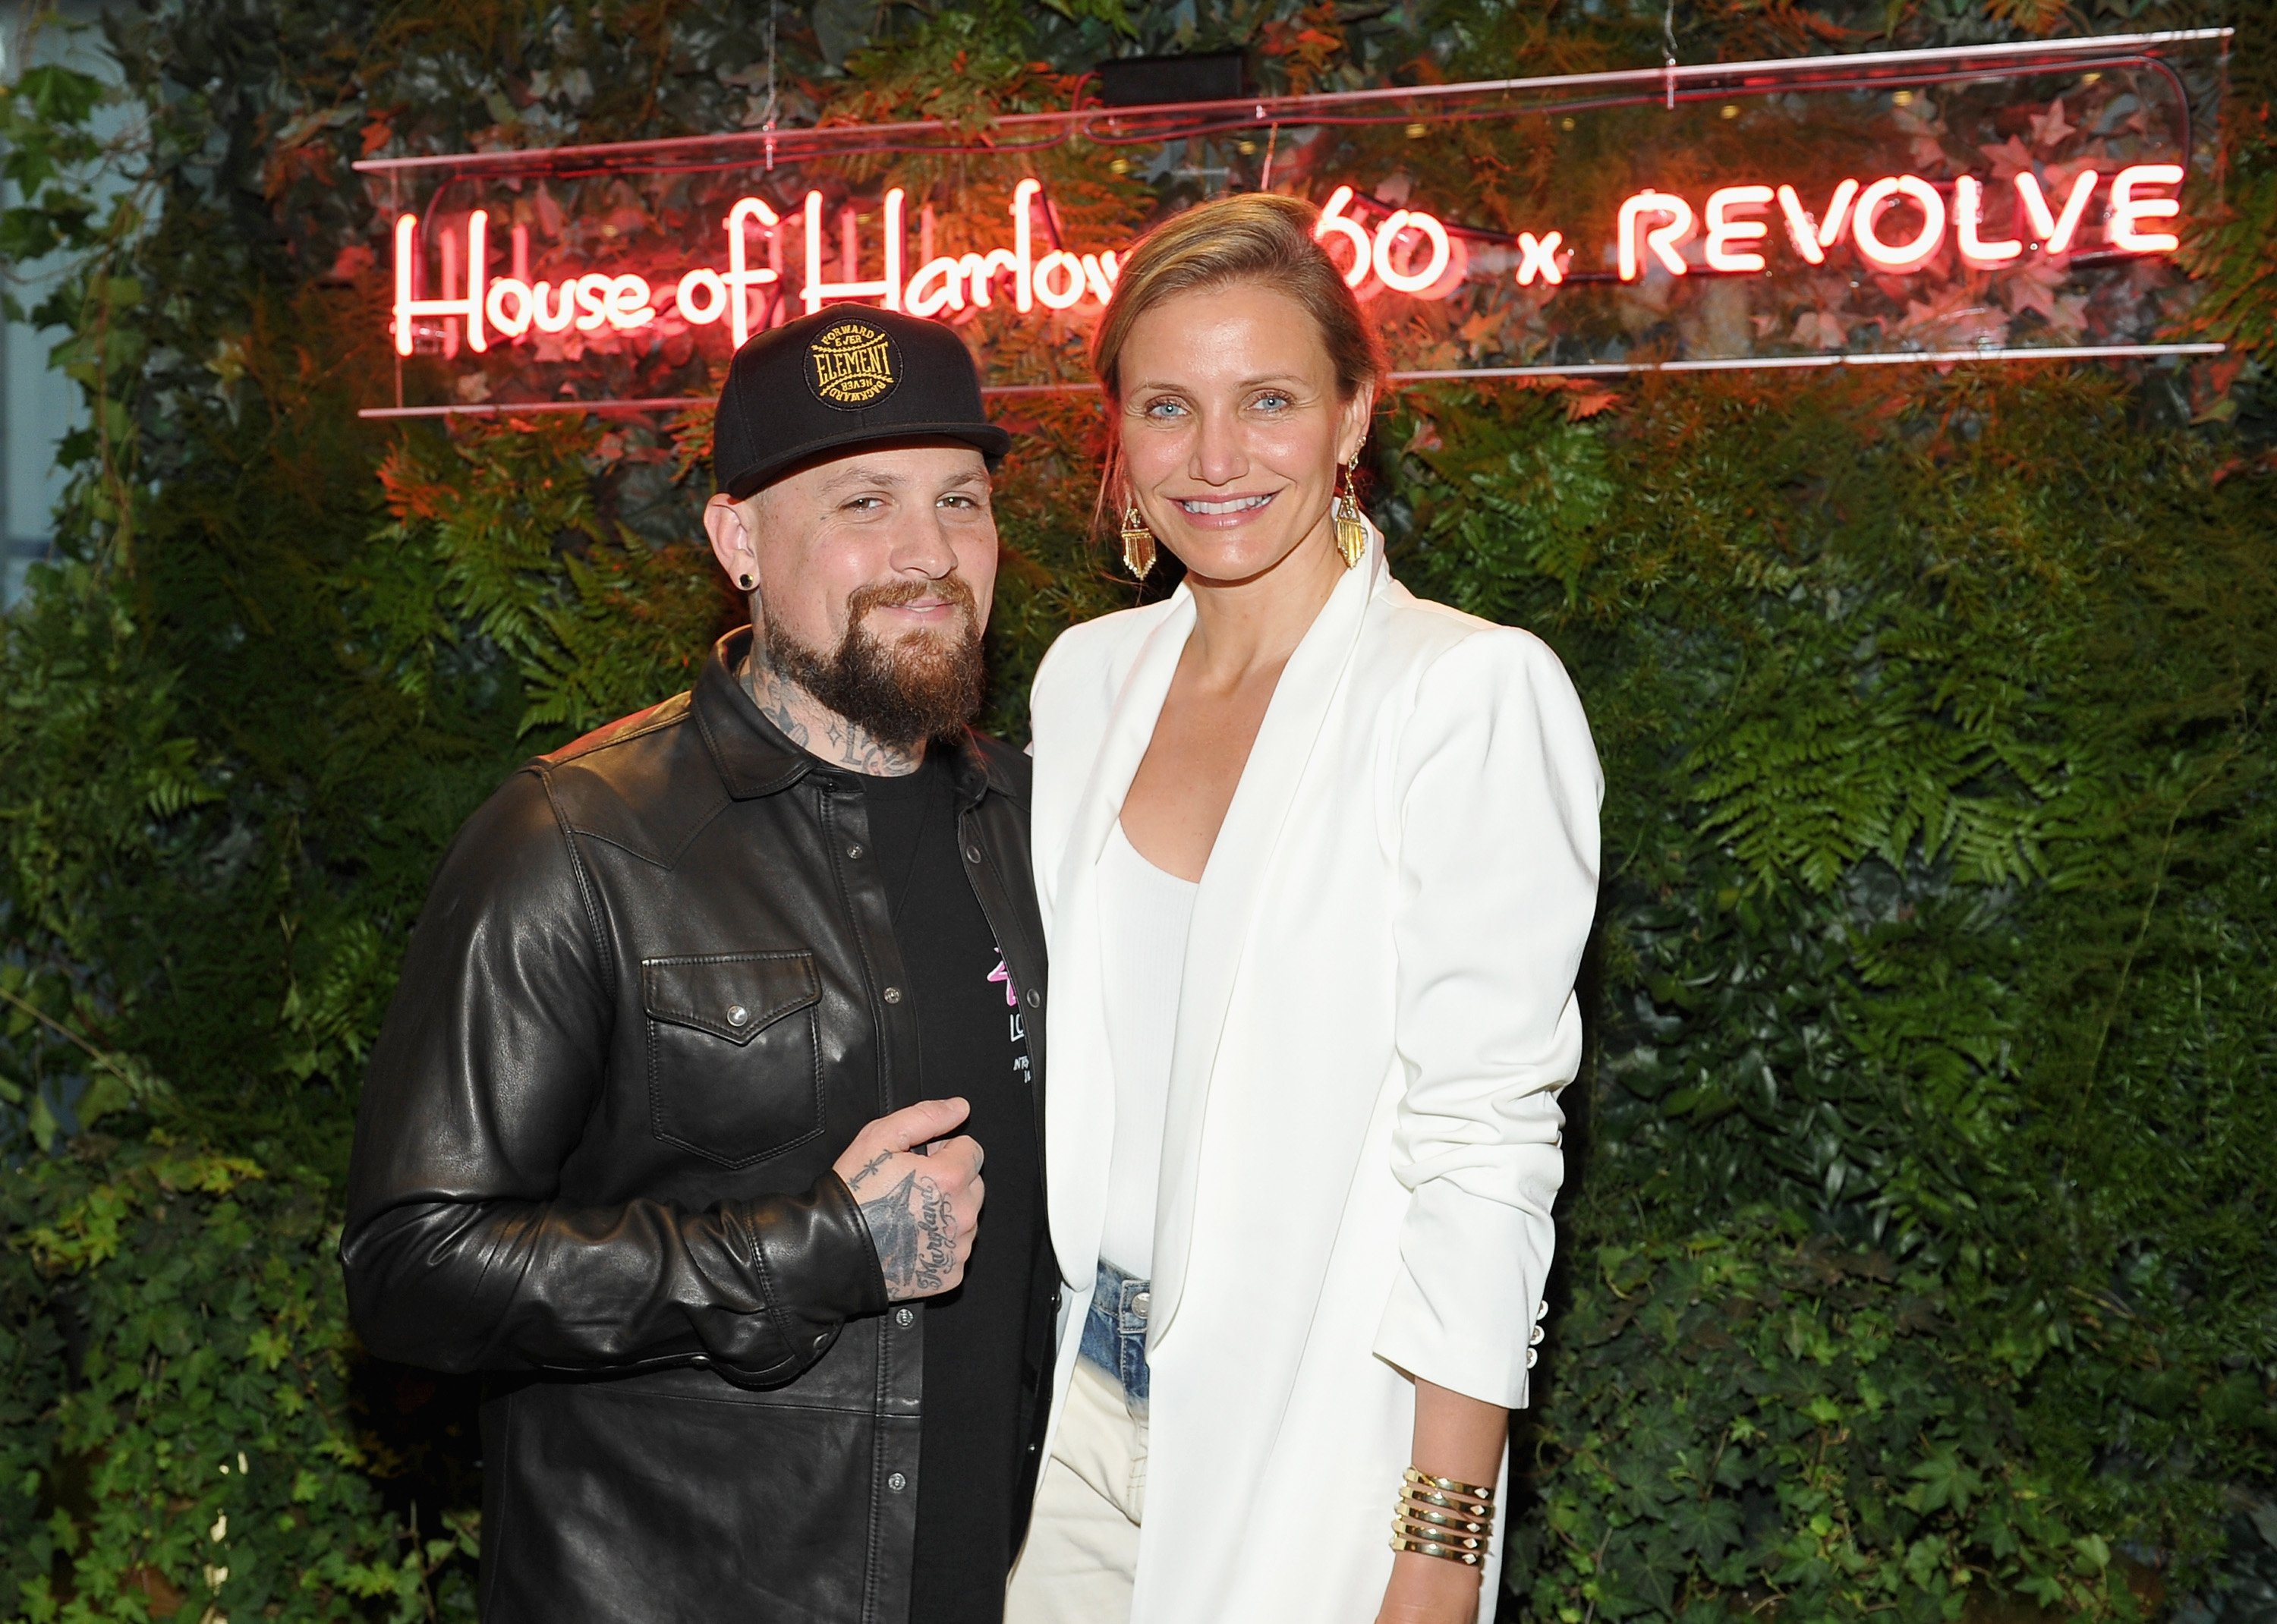 Benji Madden and Cameron Diaz attend House of Harlow 1960 x REVOLVE on June 2, 2016, in Los Angeles, California. | Source: Getty Images.